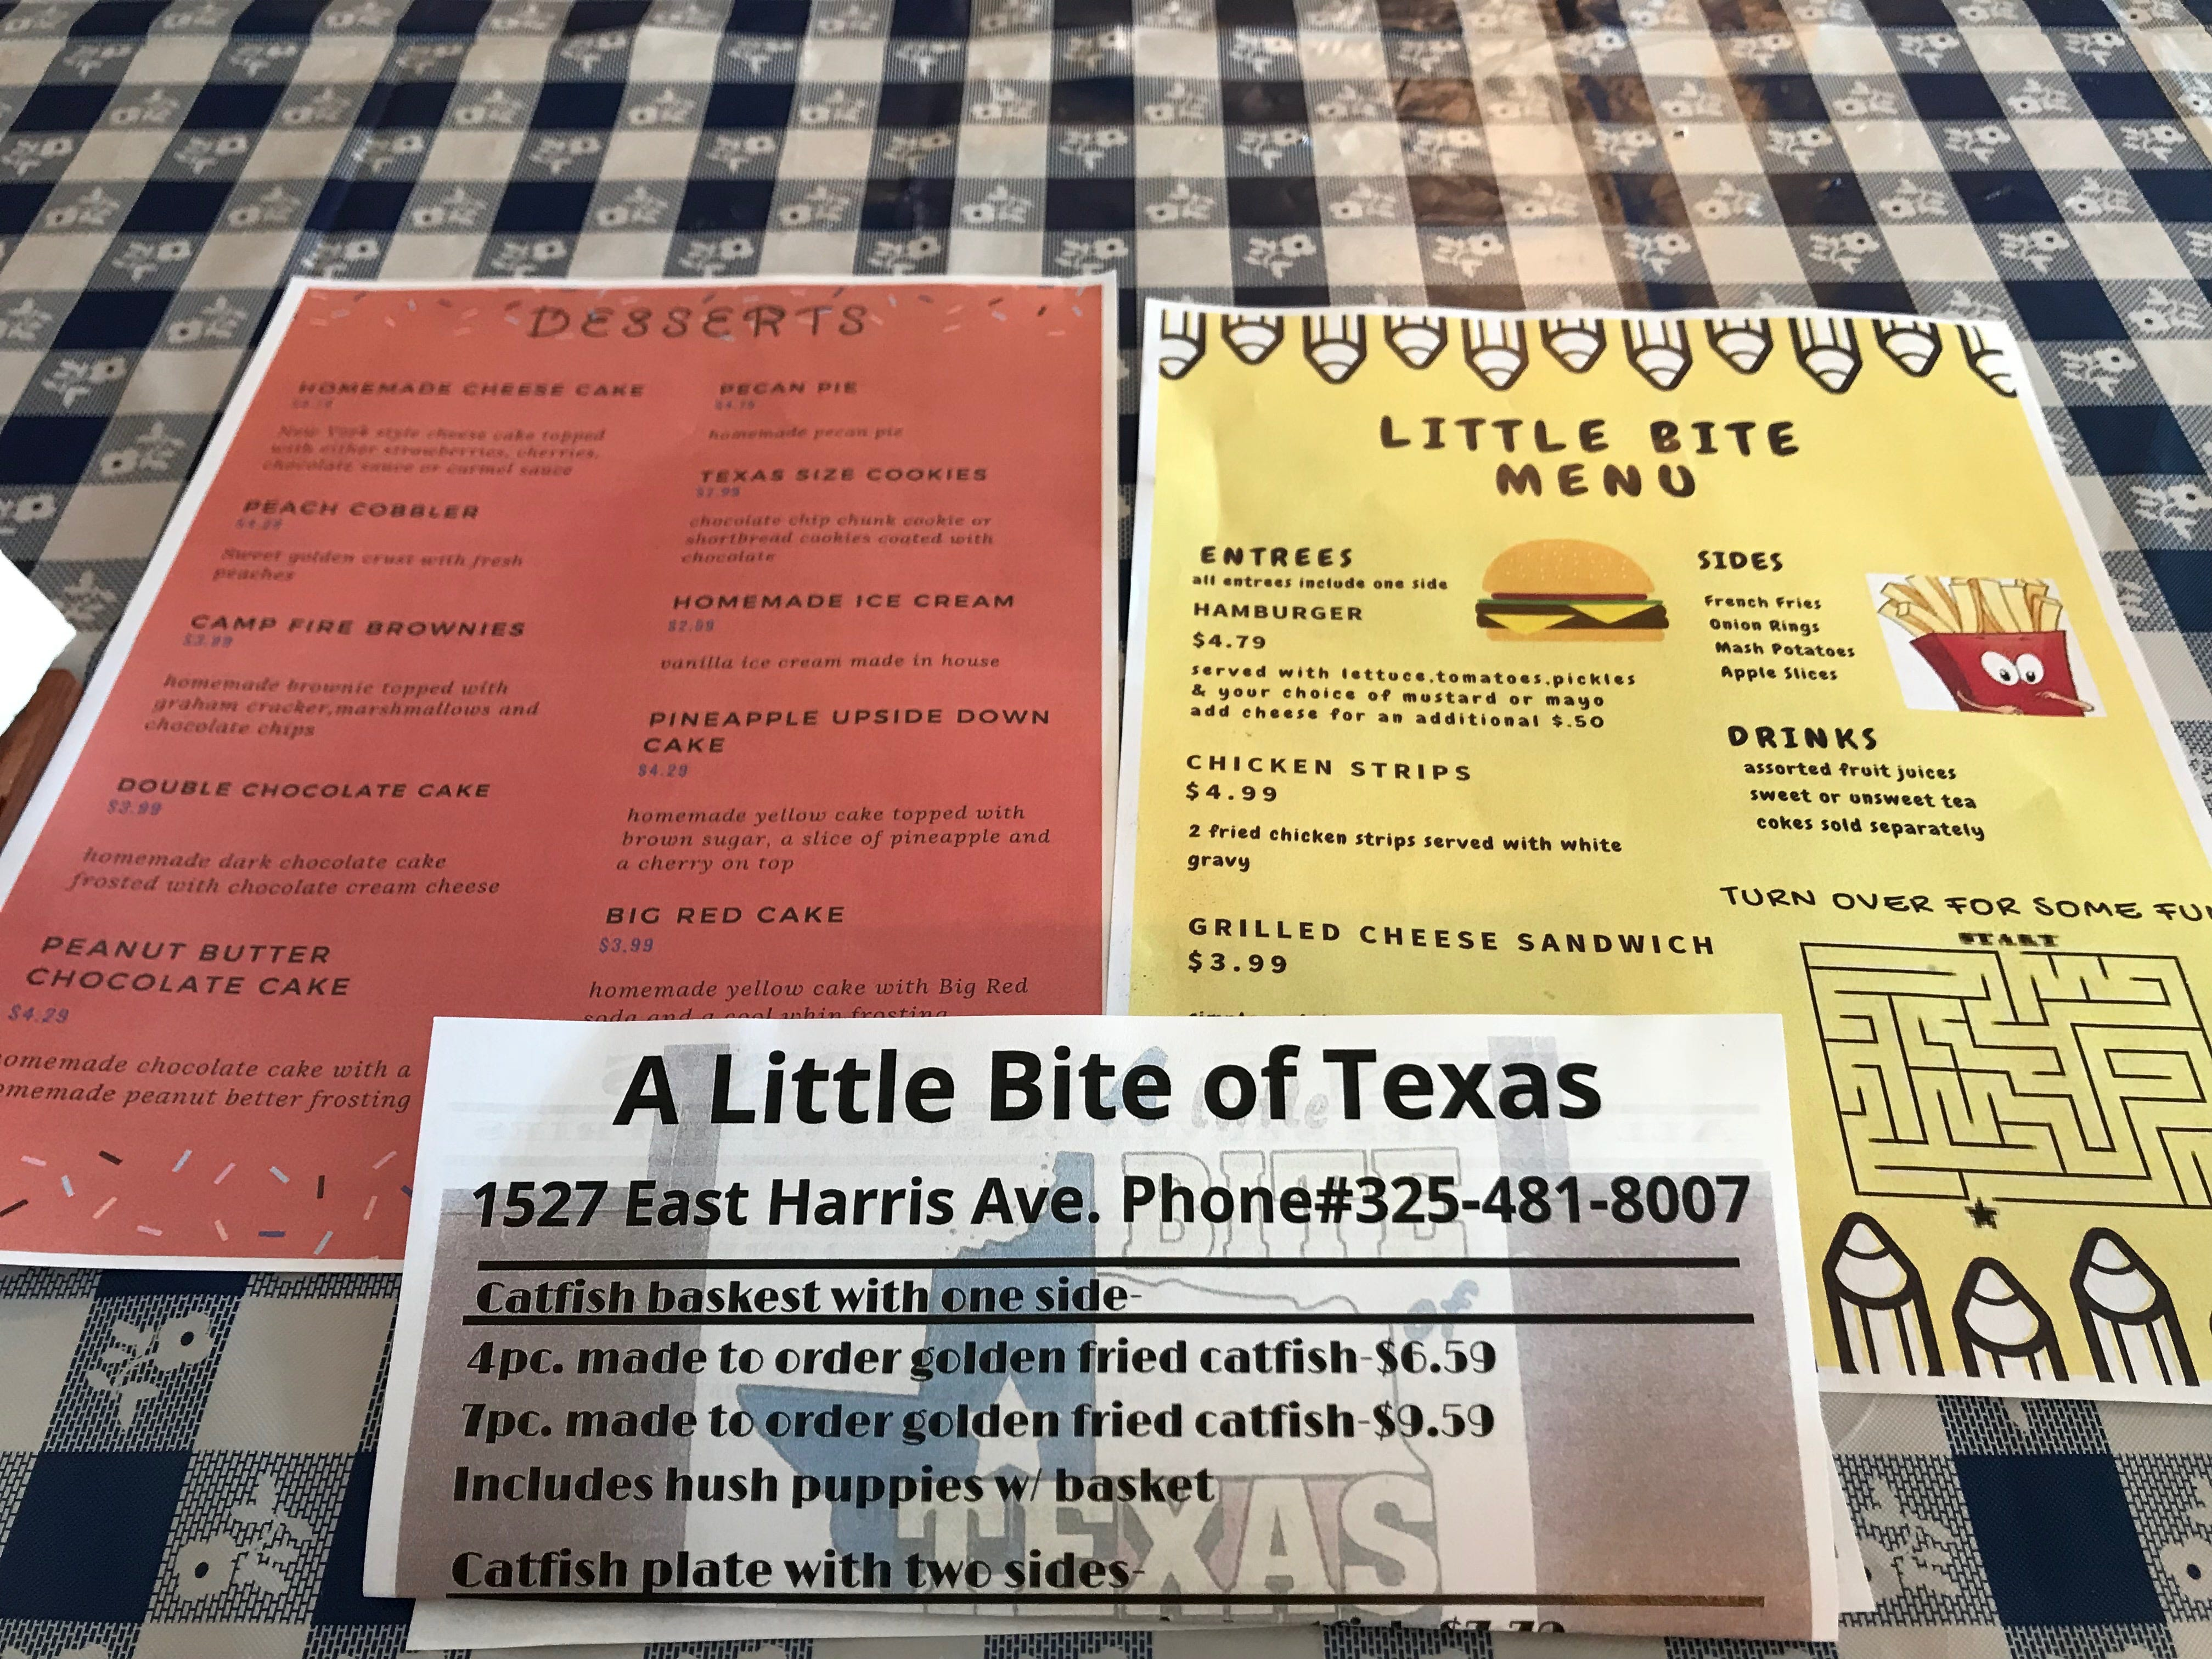 The menus from A Little Bite of Texas,1527 East Harris Ave., offer an array of southern favorites.